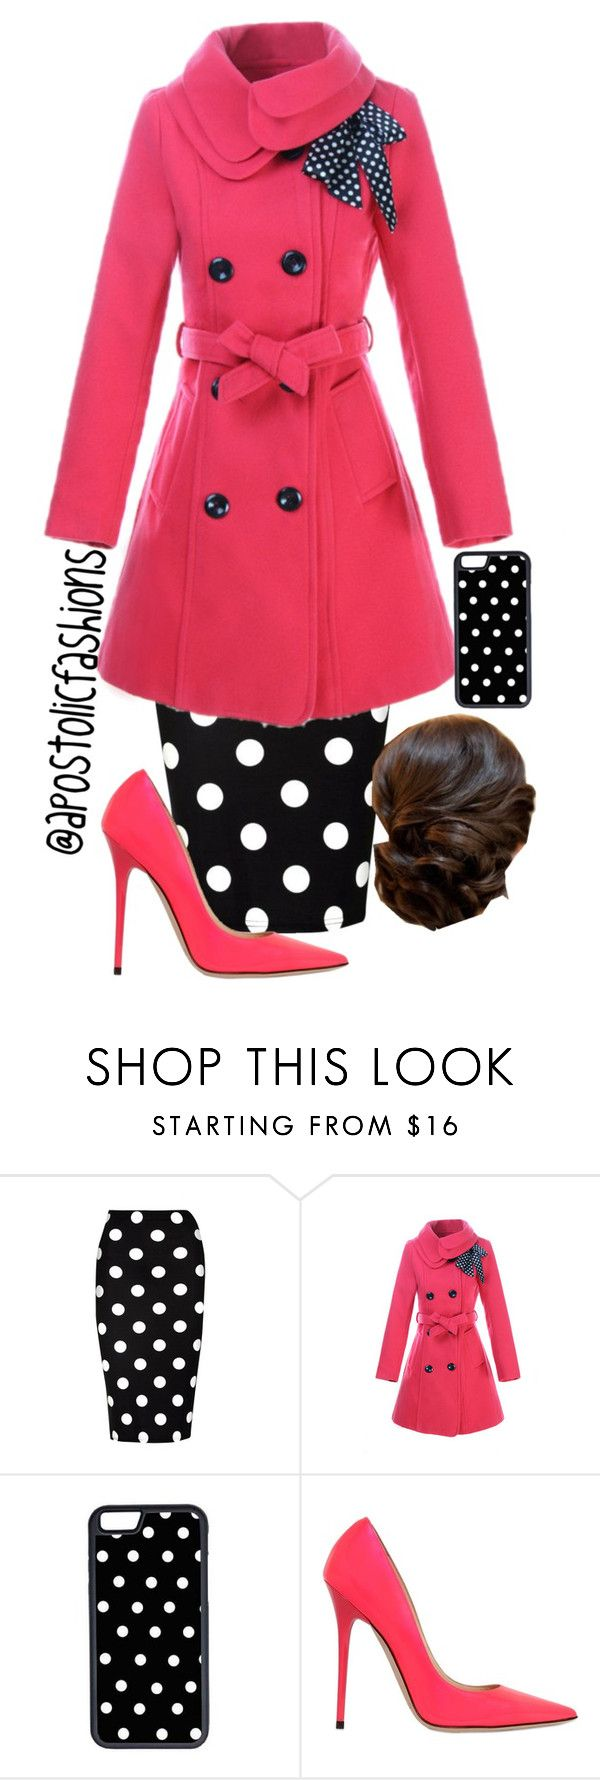 """""""Apostolic Fashions #879"""" by apostolicfashions on Polyvore featuring So in Fashion, CellPowerCases and Jimmy Choo"""